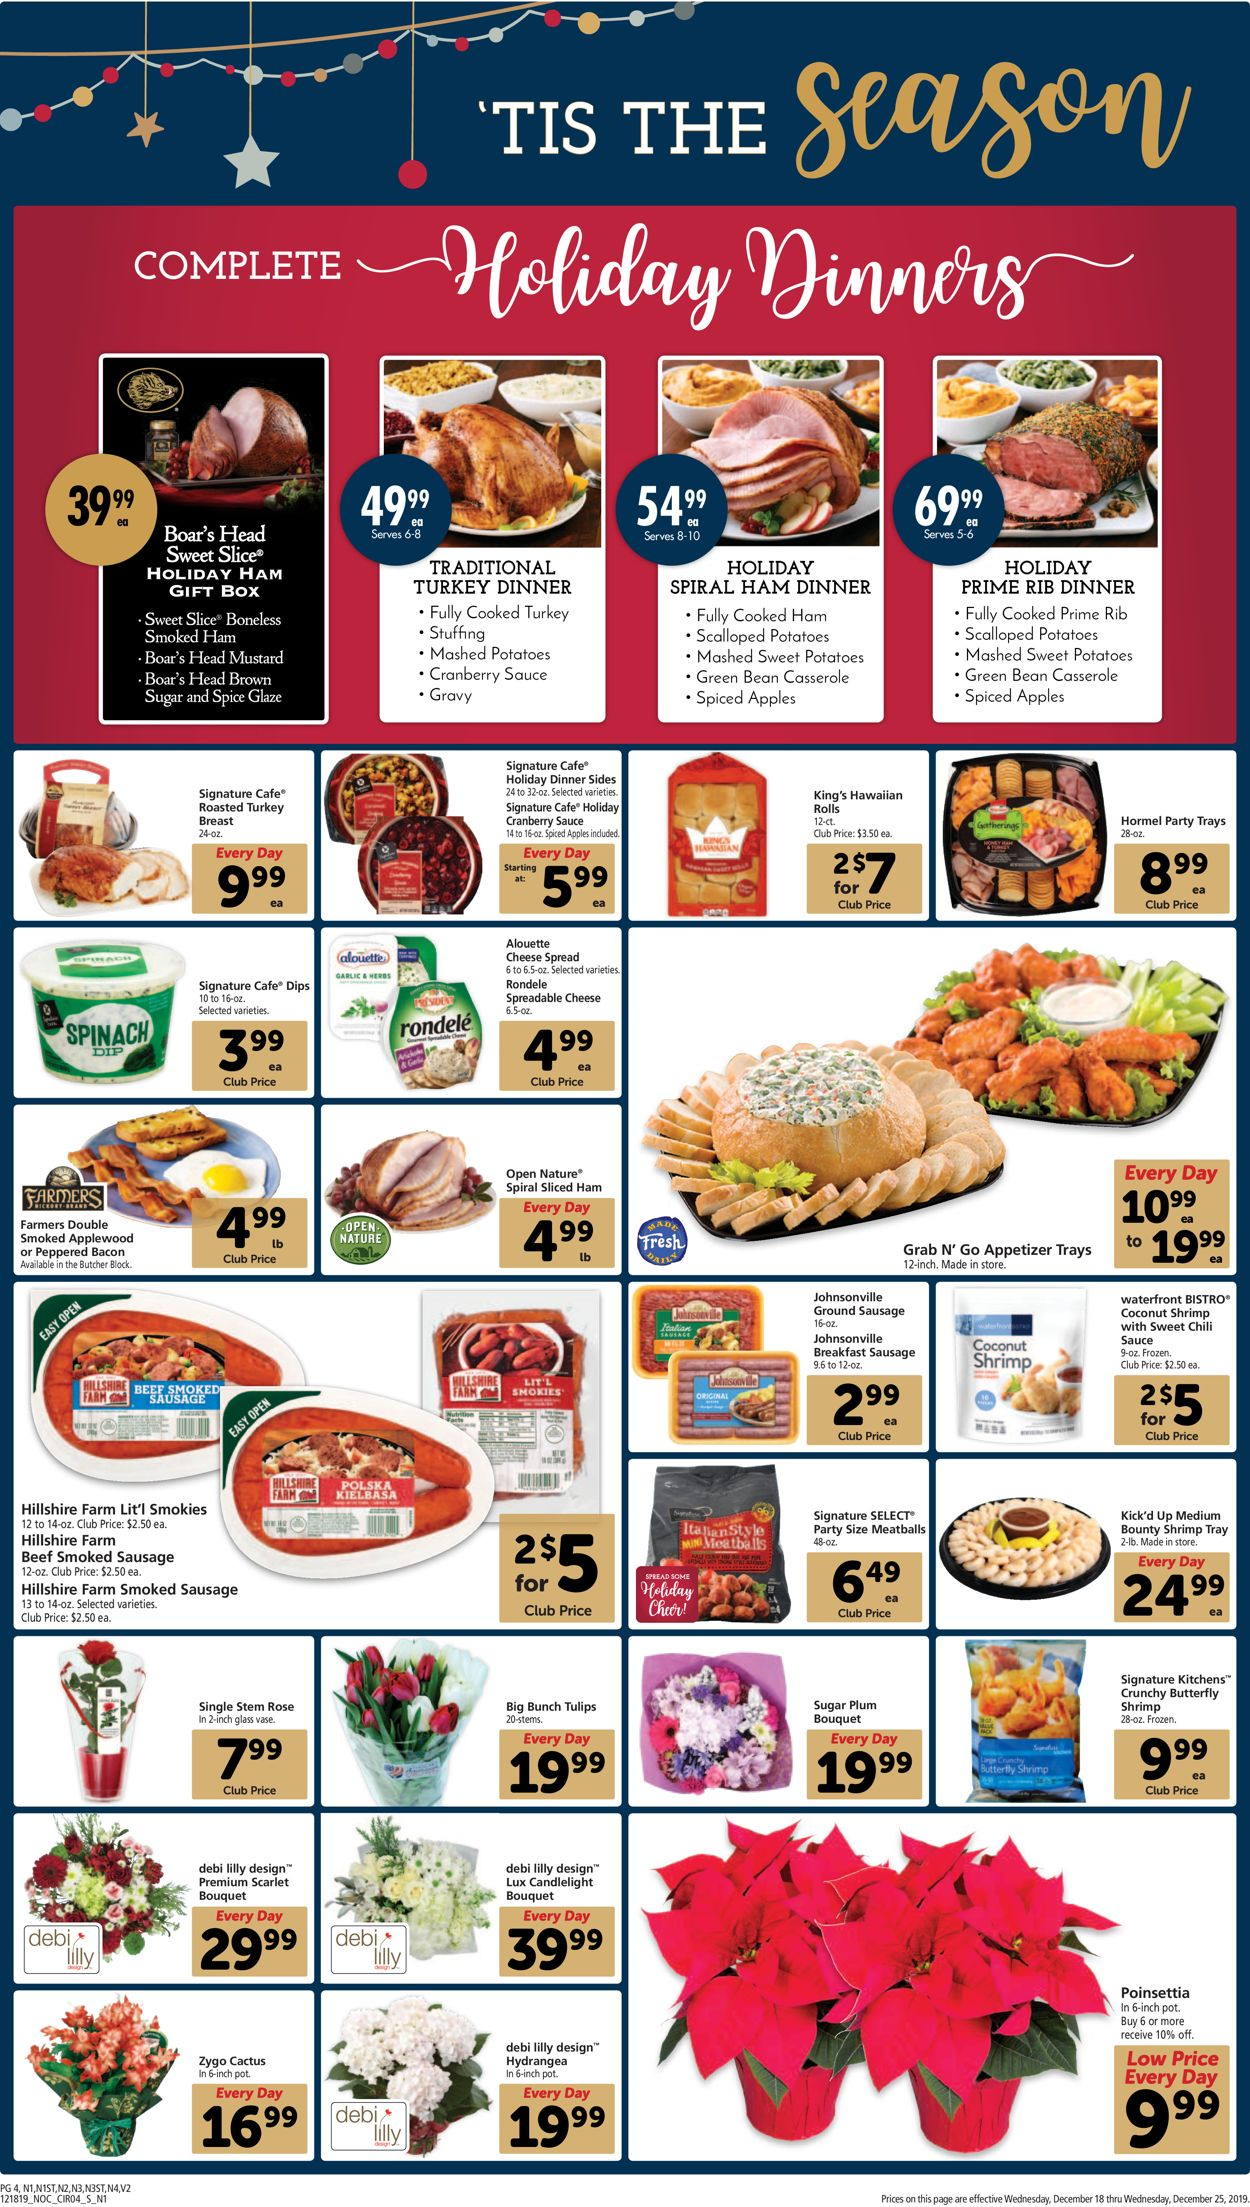 Safeway Complete Holiday Dinners 2020 Christmas Safeway   Holiday Ad 2019 Current weekly ad 12/18   12/25/2019 [4